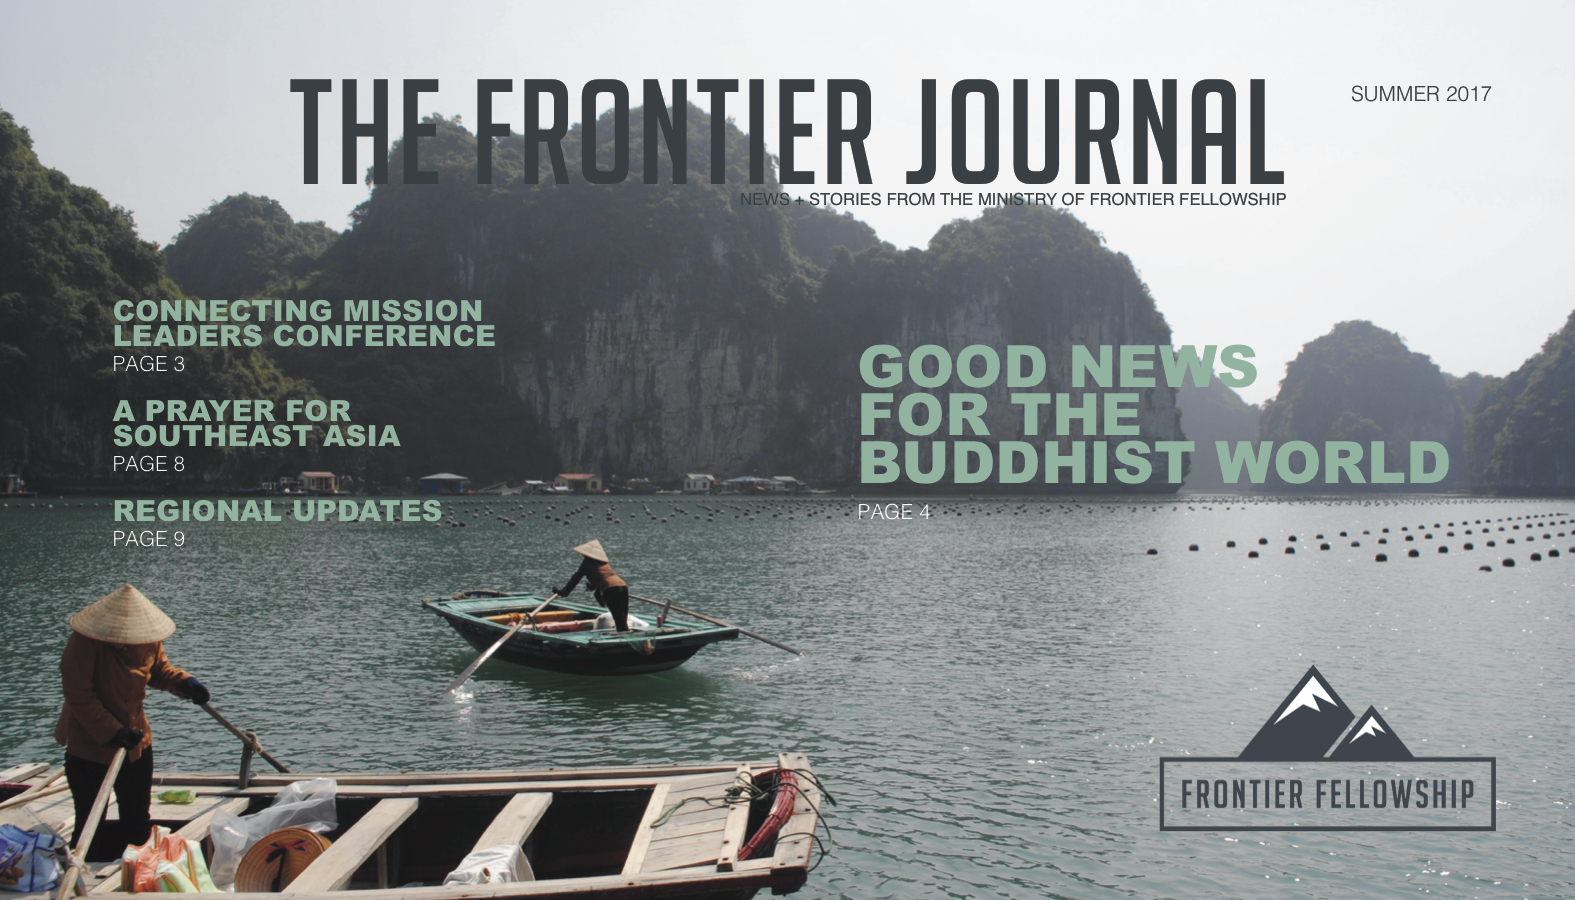 The Frontier Journal | Summer 2017.jpg